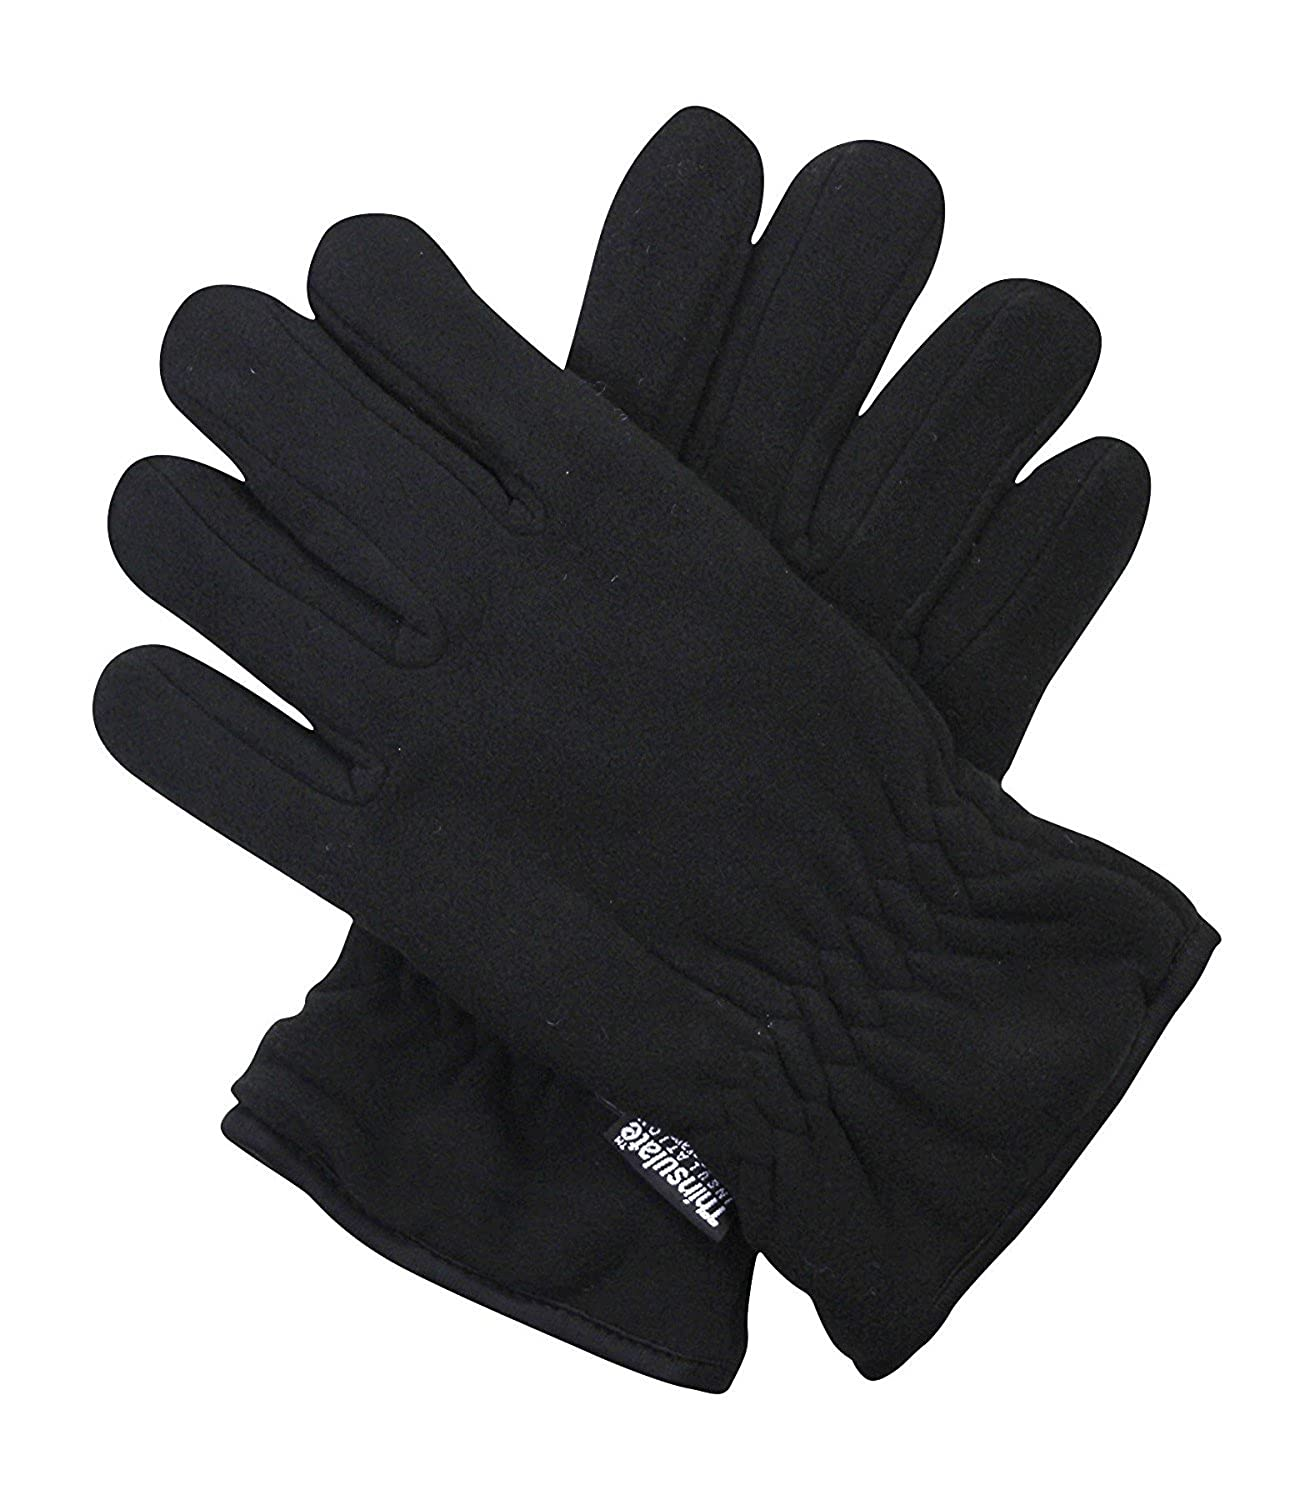 3a4c74115eb12 Black 40g Thermal Insulation Polar Fleece Winter Gloves - One Size Fits Al  at Amazon Men s Clothing store